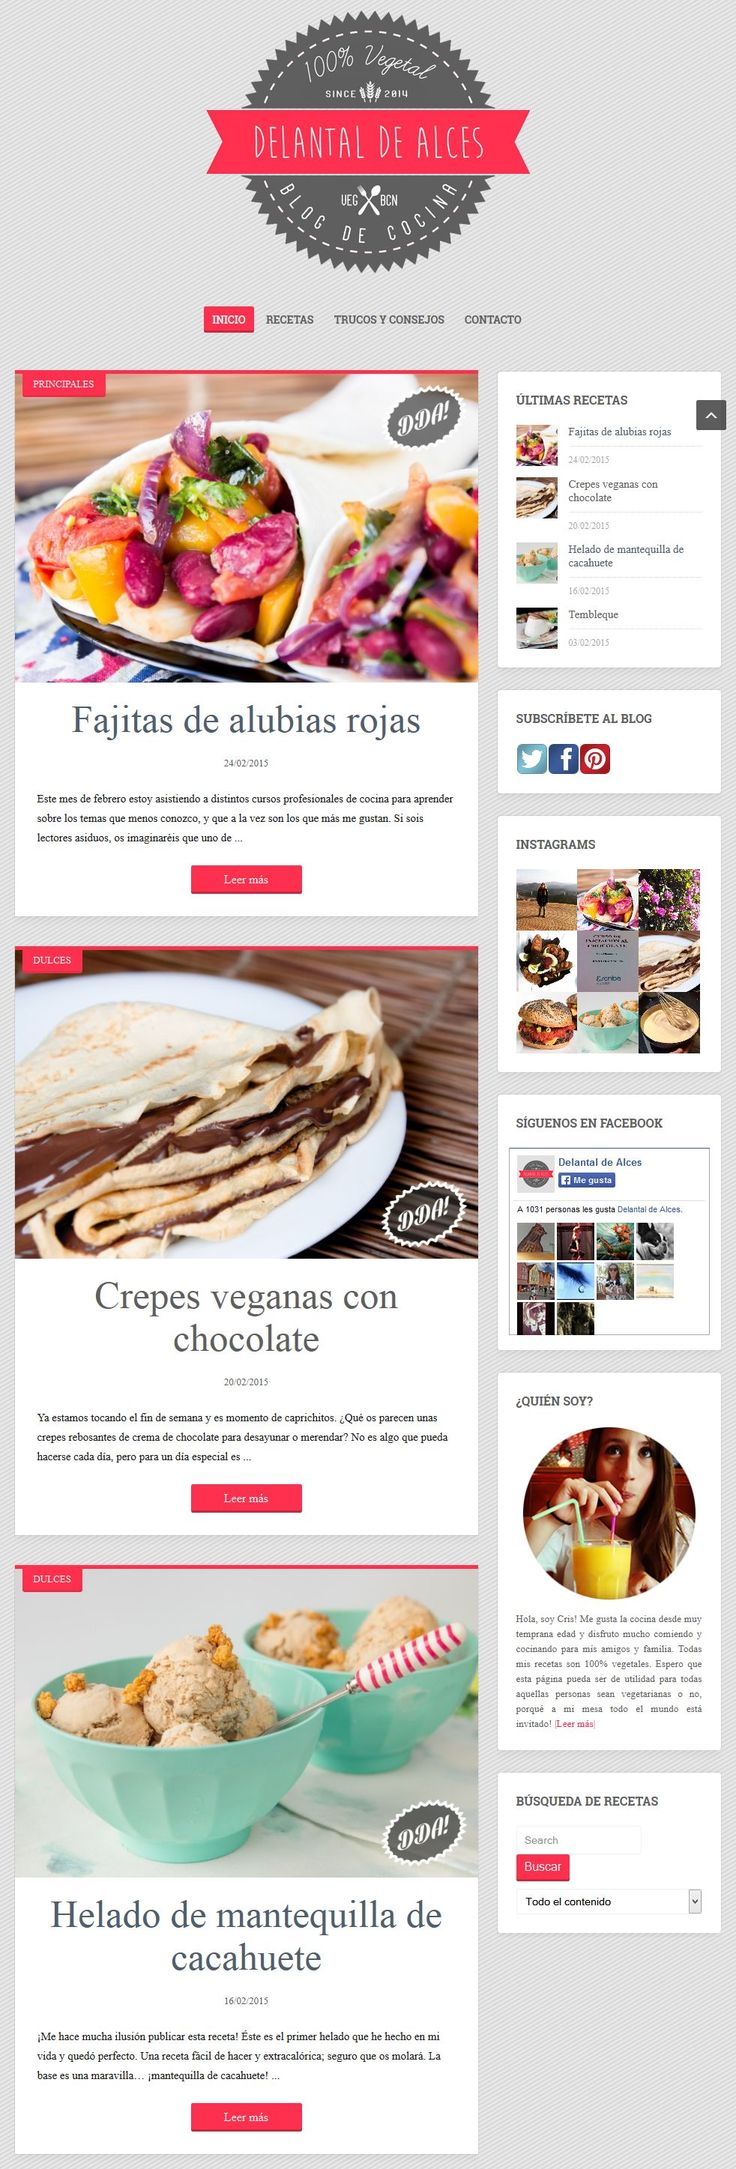 1000 Images About Blogs Y P Ginas De Cocina Vegana On